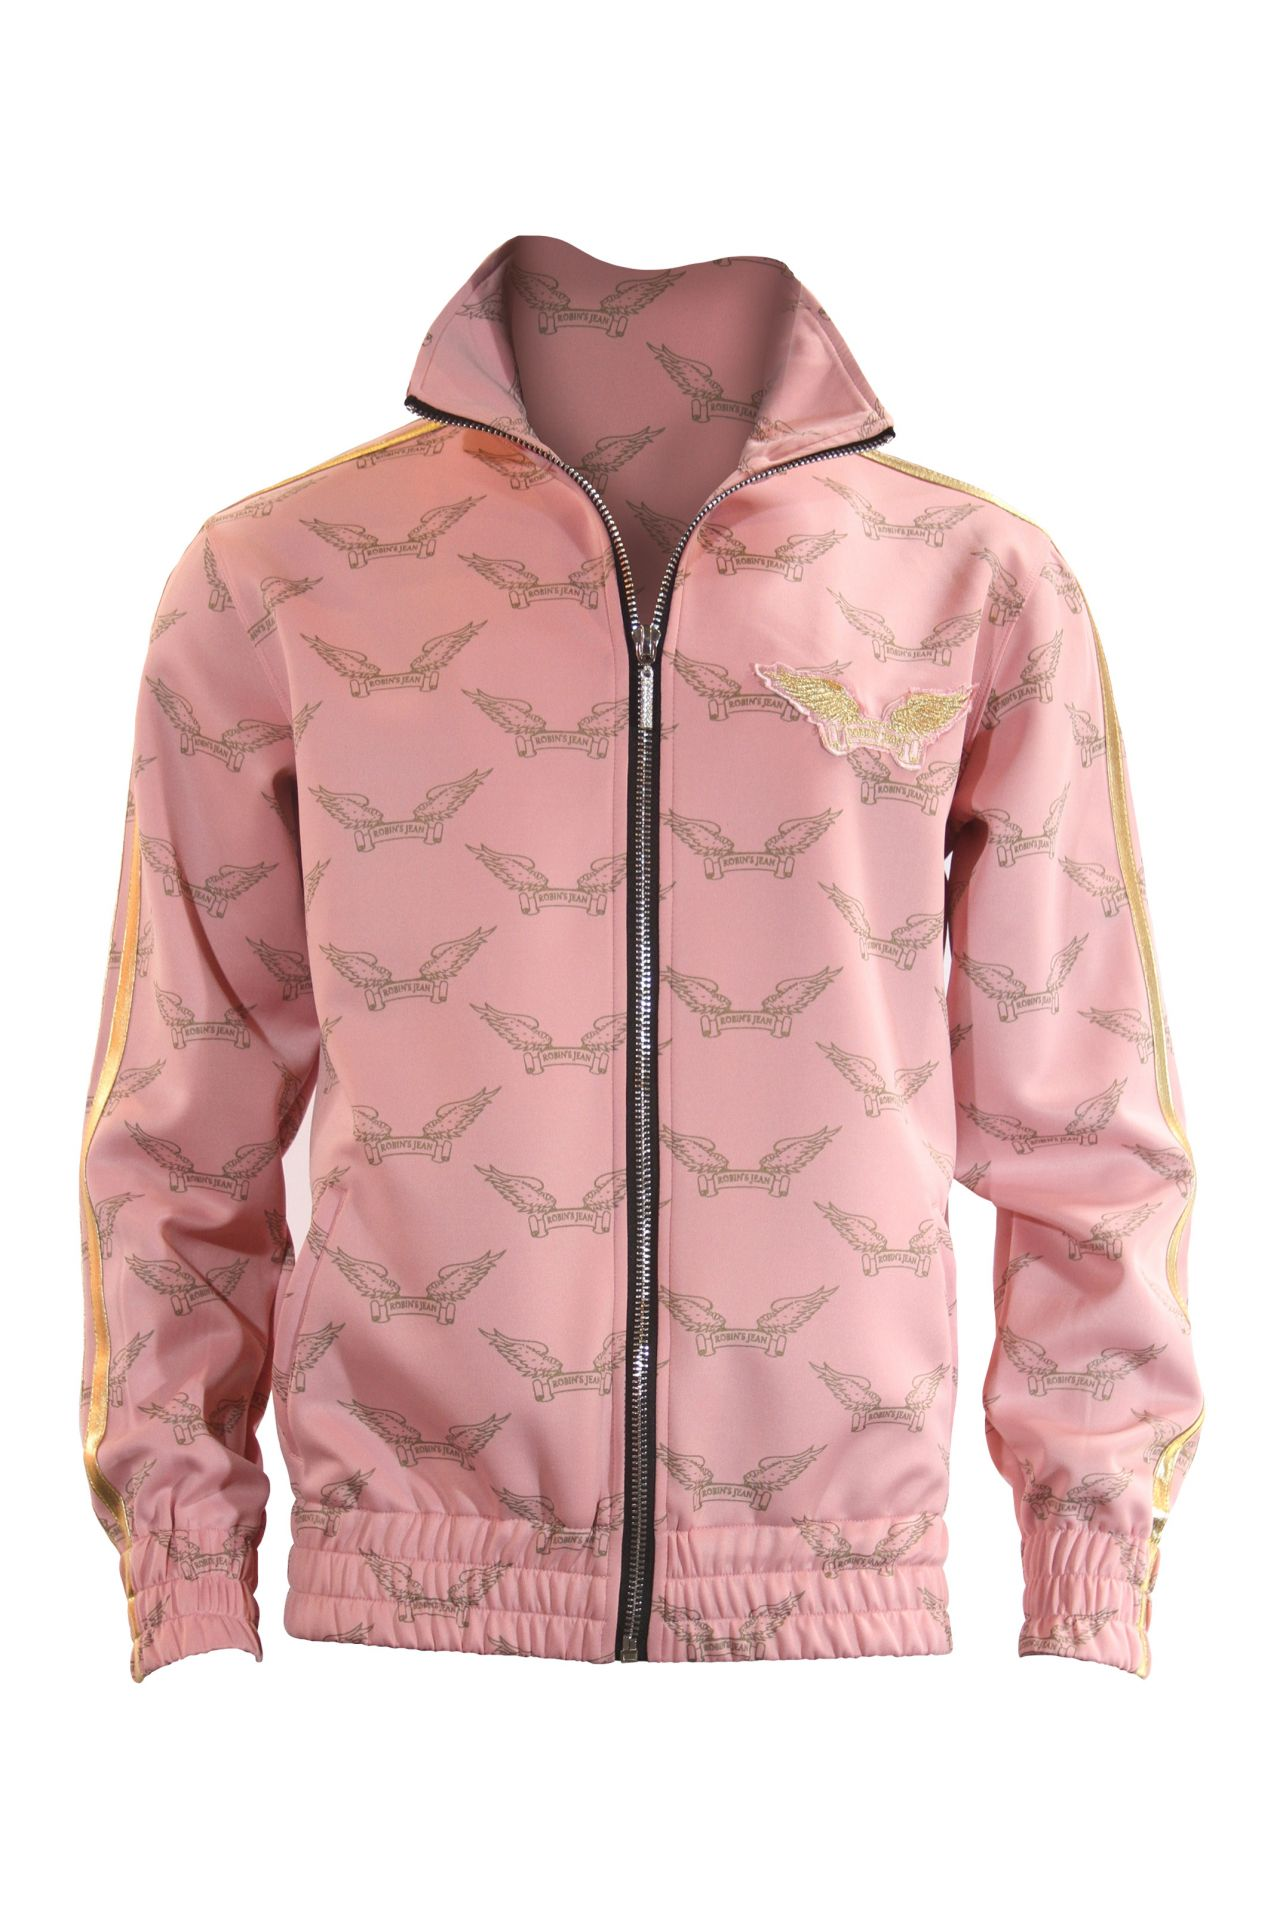 ROBIN'S MONOGRAM TRACK JACKET IN PINK AND GOLD